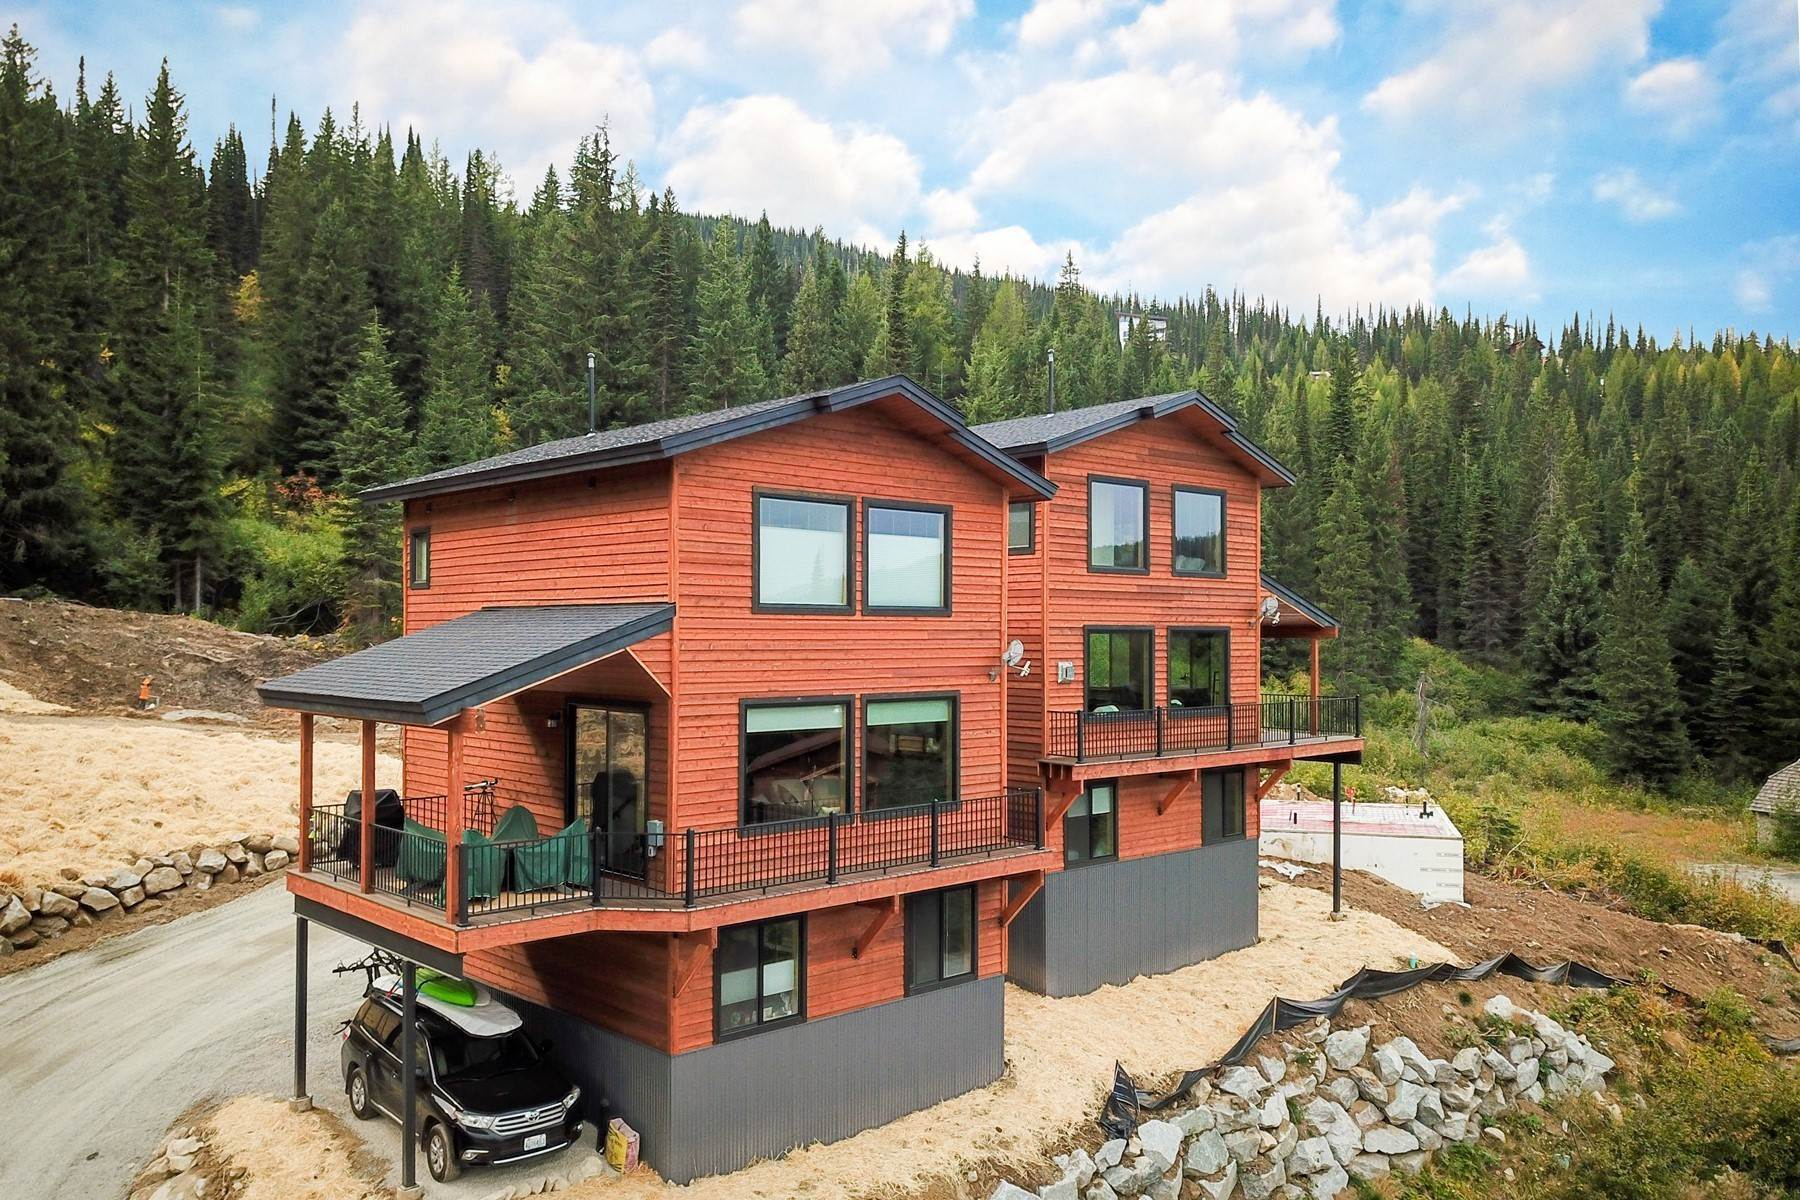 Single Family Homes for Sale at Schweitzer Mountain Getaway Lot 14 Harrison Lane Sandpoint, Idaho 83864